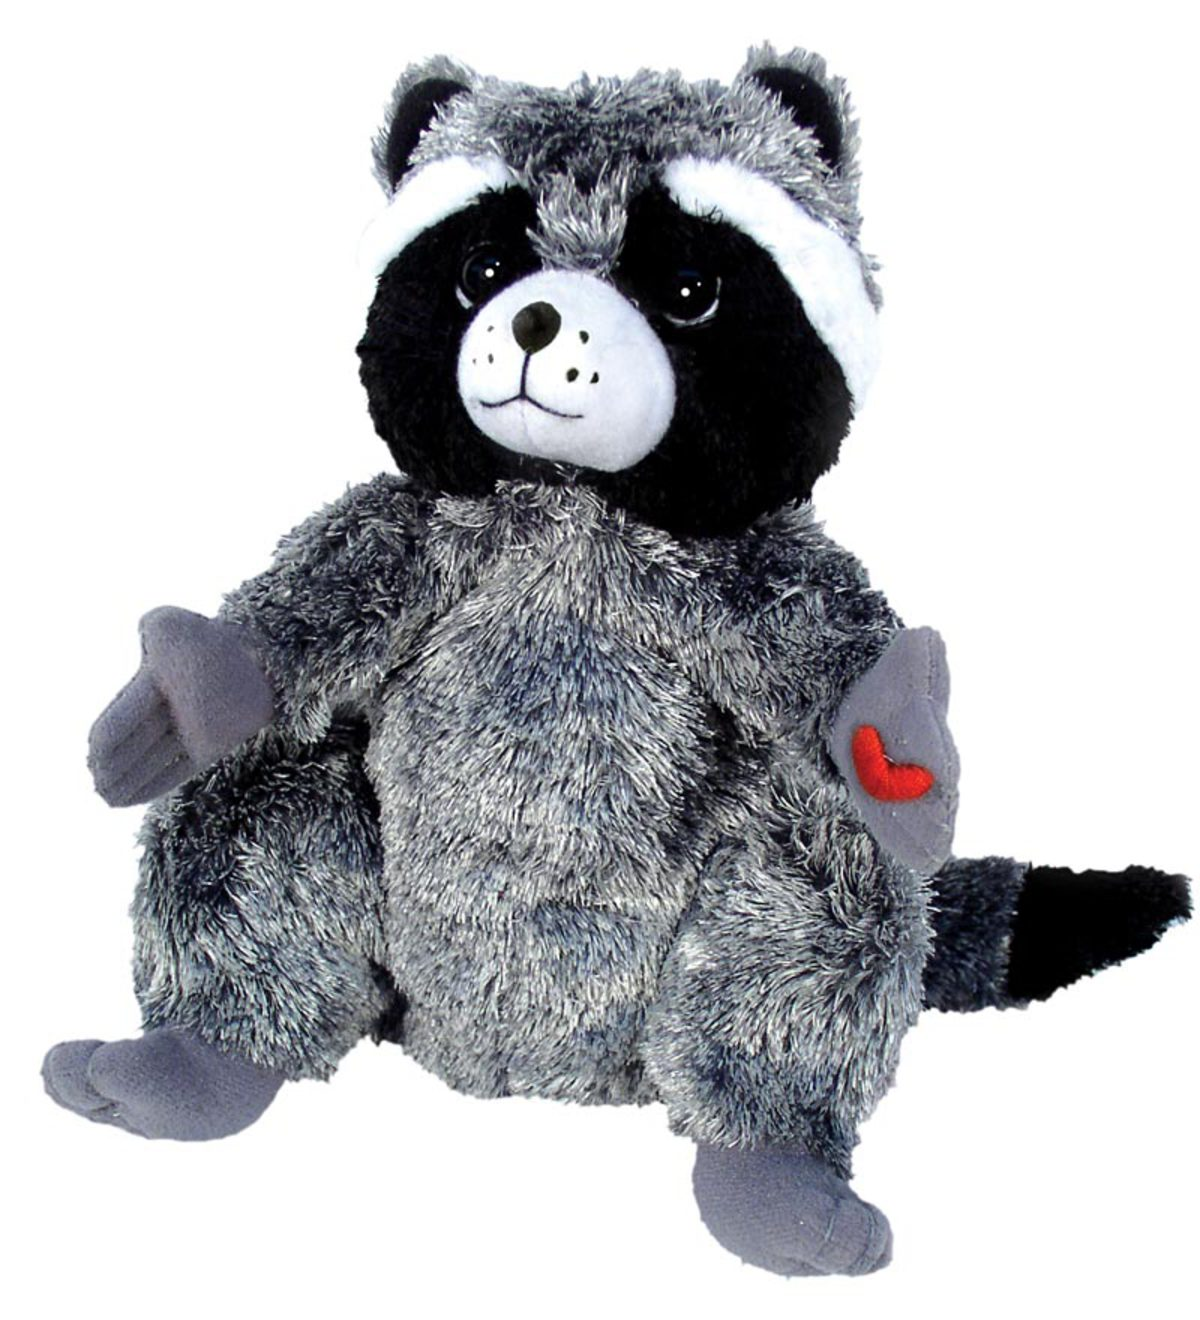 The Kissing Hand Raccoon Plush